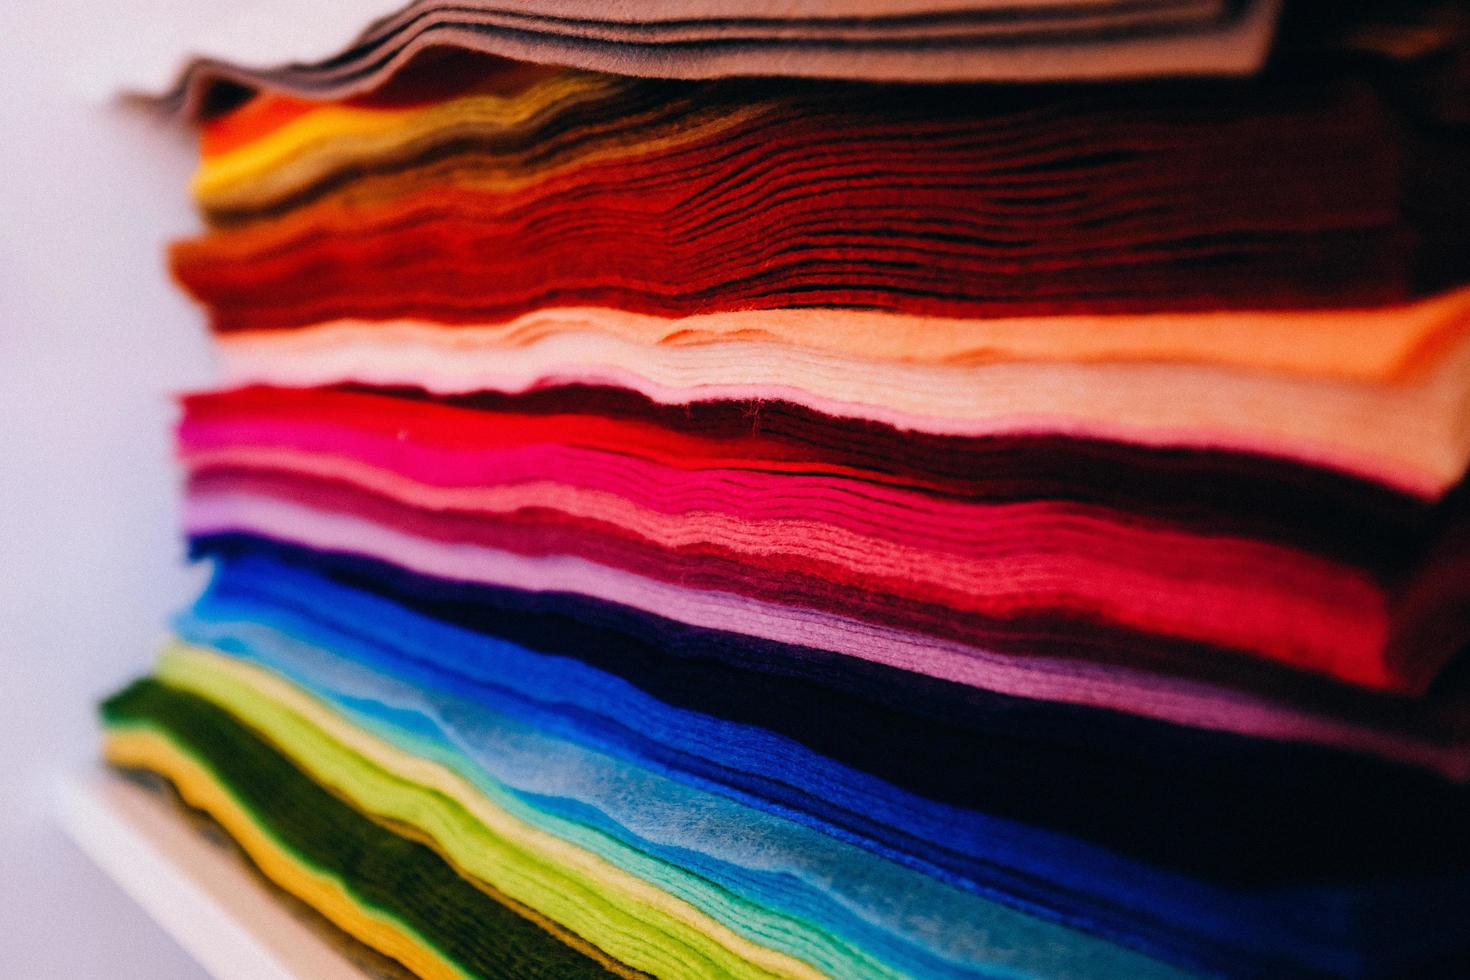 Colorful pieces of stacked cloth photo